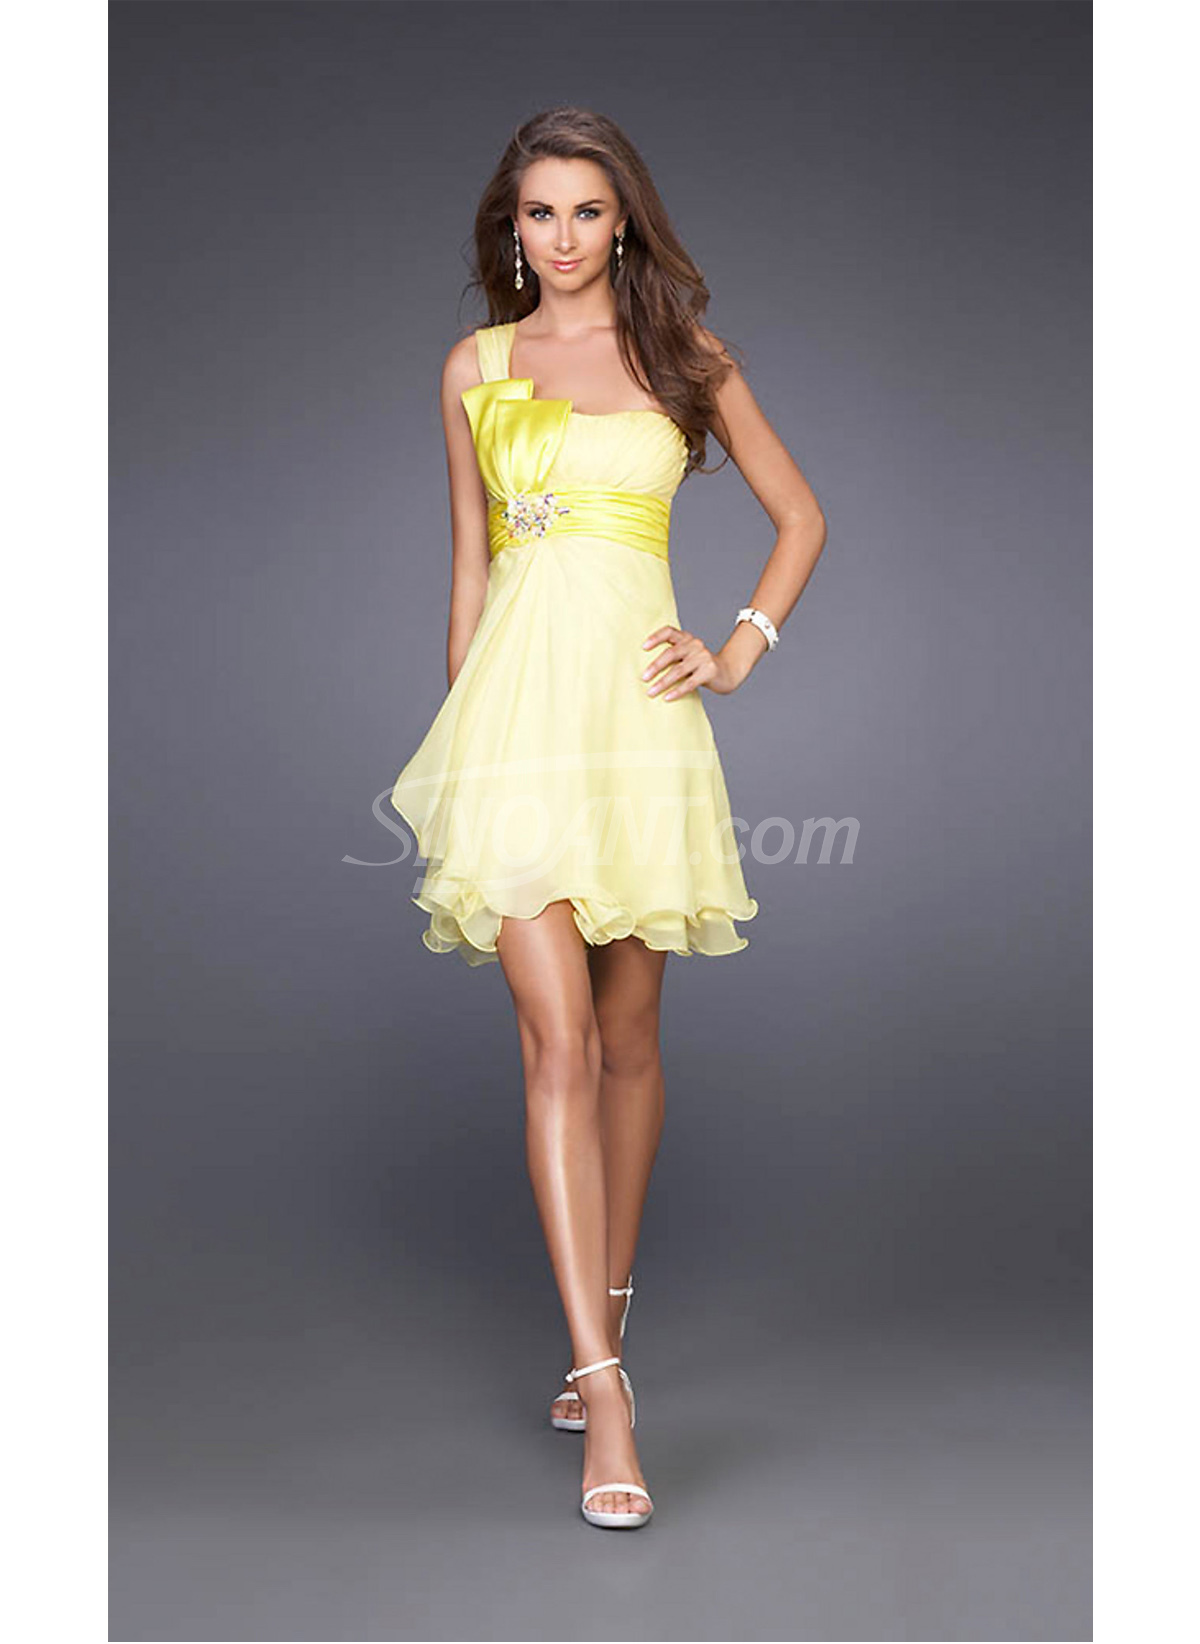 homecoming dresses, fashion, evening dress, prom dress